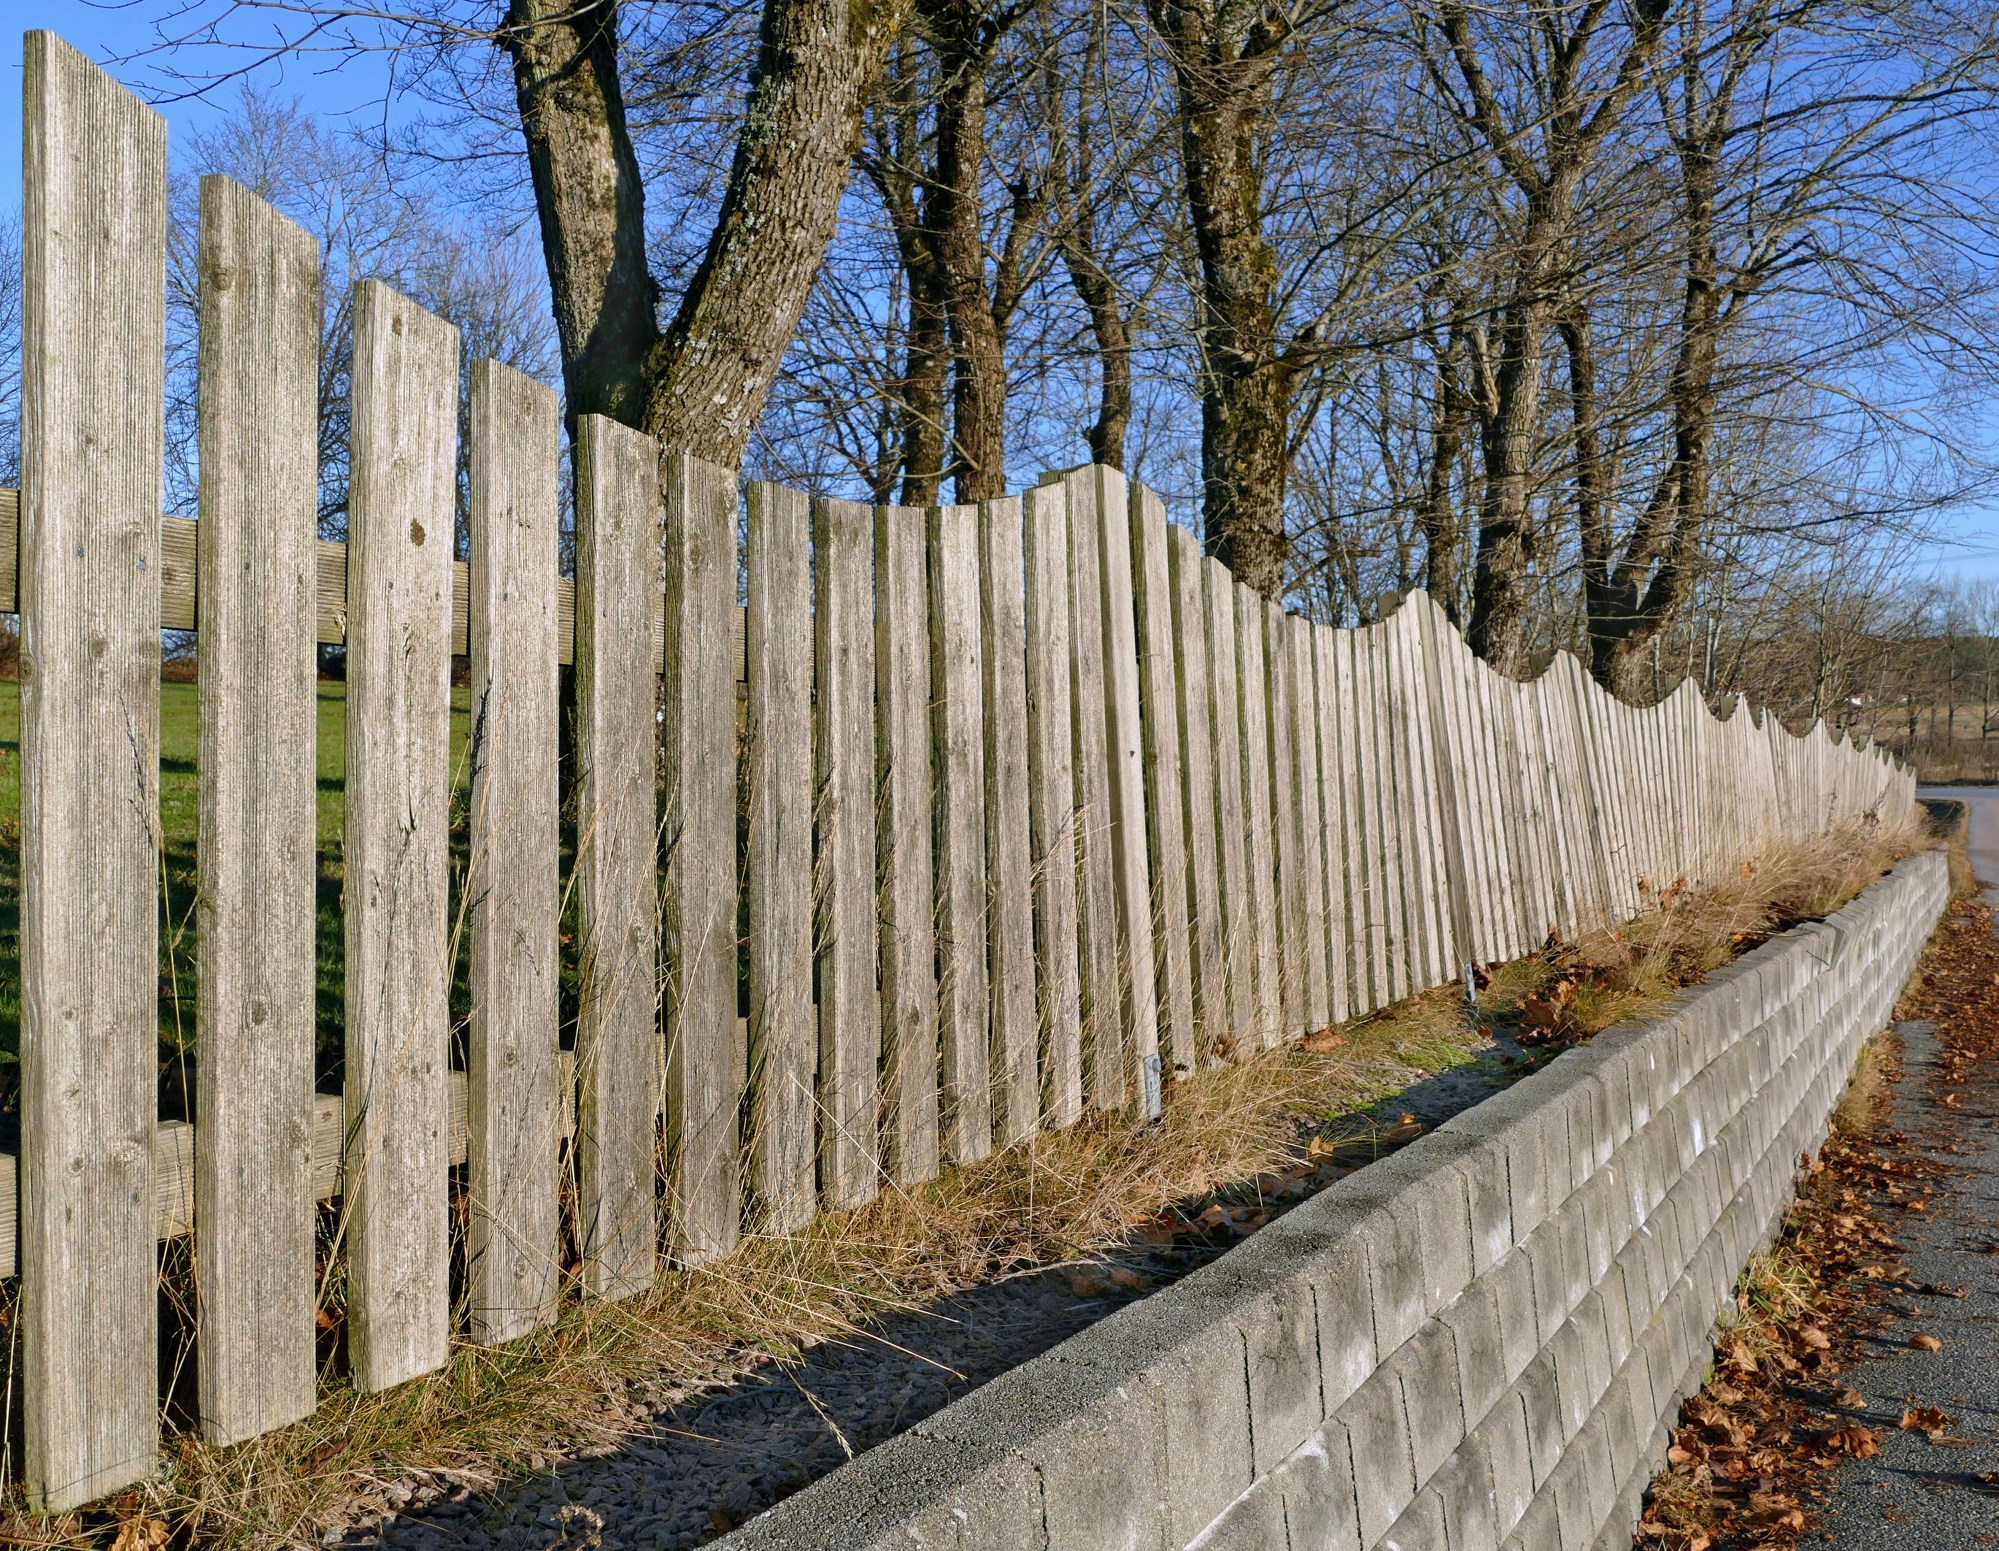 hight resolution of wavy fence on a wall